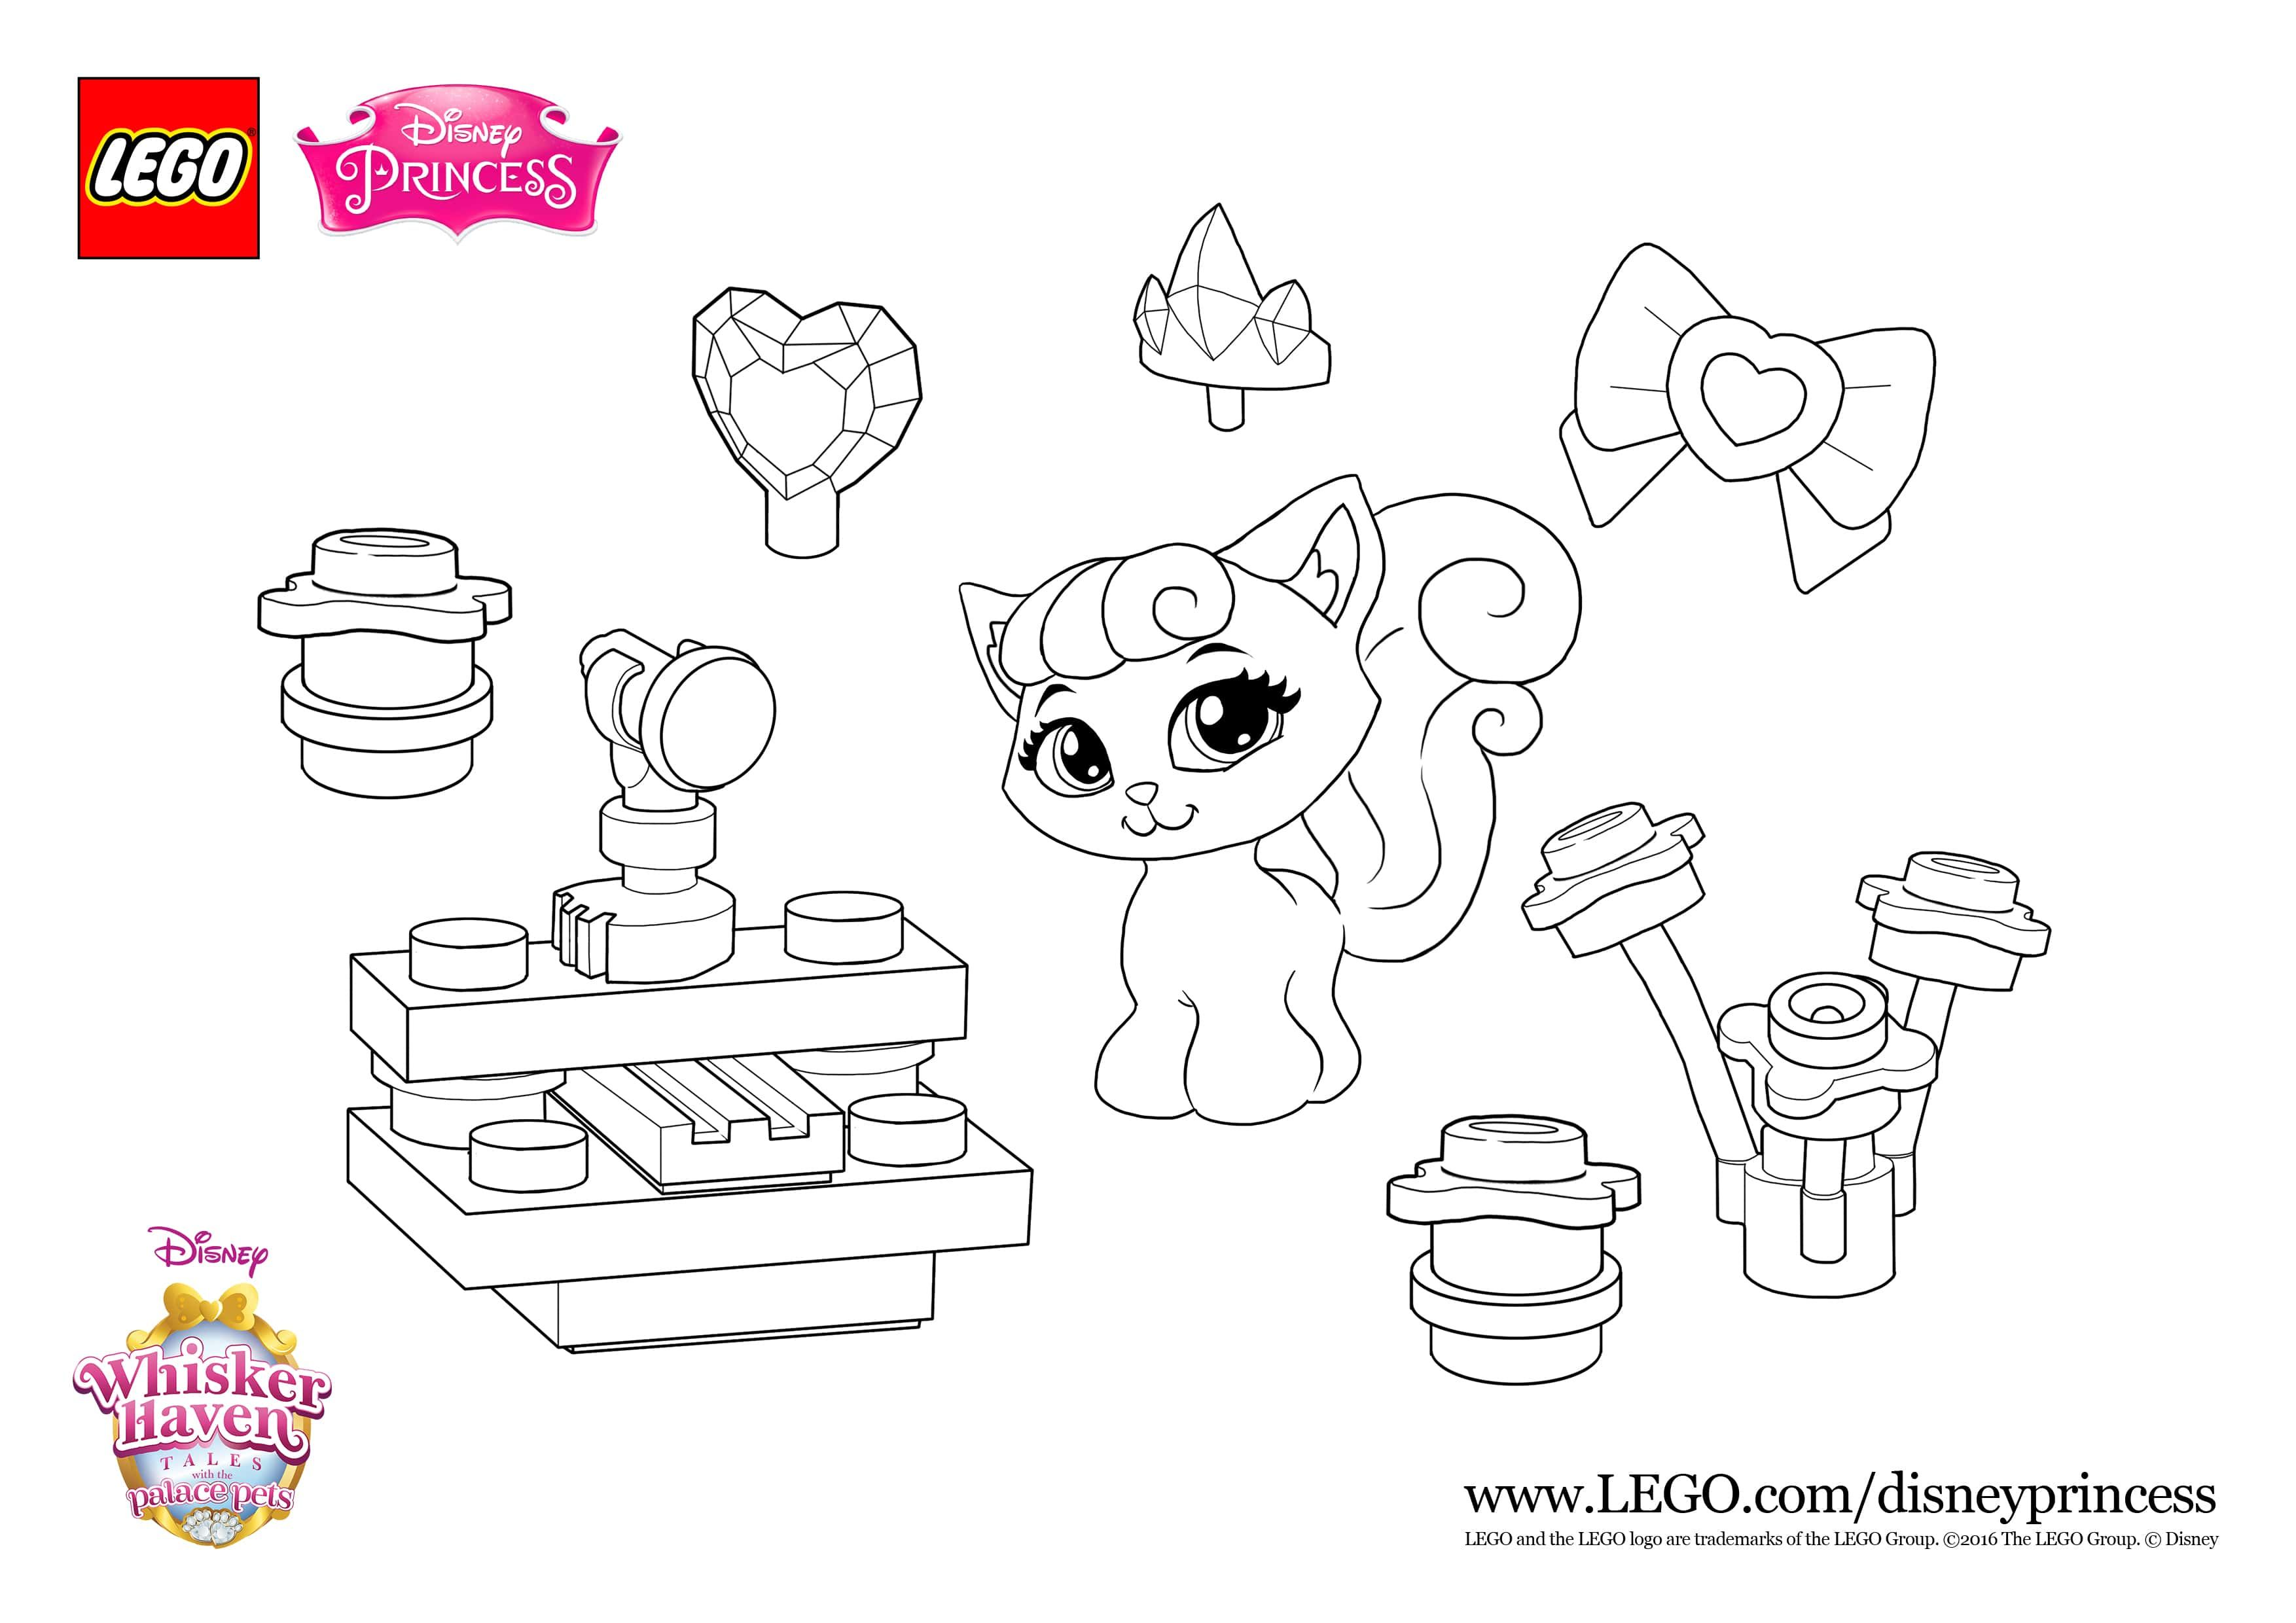 Cute Little Dreamy Joins The Colouring Fun Print The Sheet And Start Colouring In This Adorable Picture More Fun Activities On Lego C Lego Ideeen Lego Ideeen